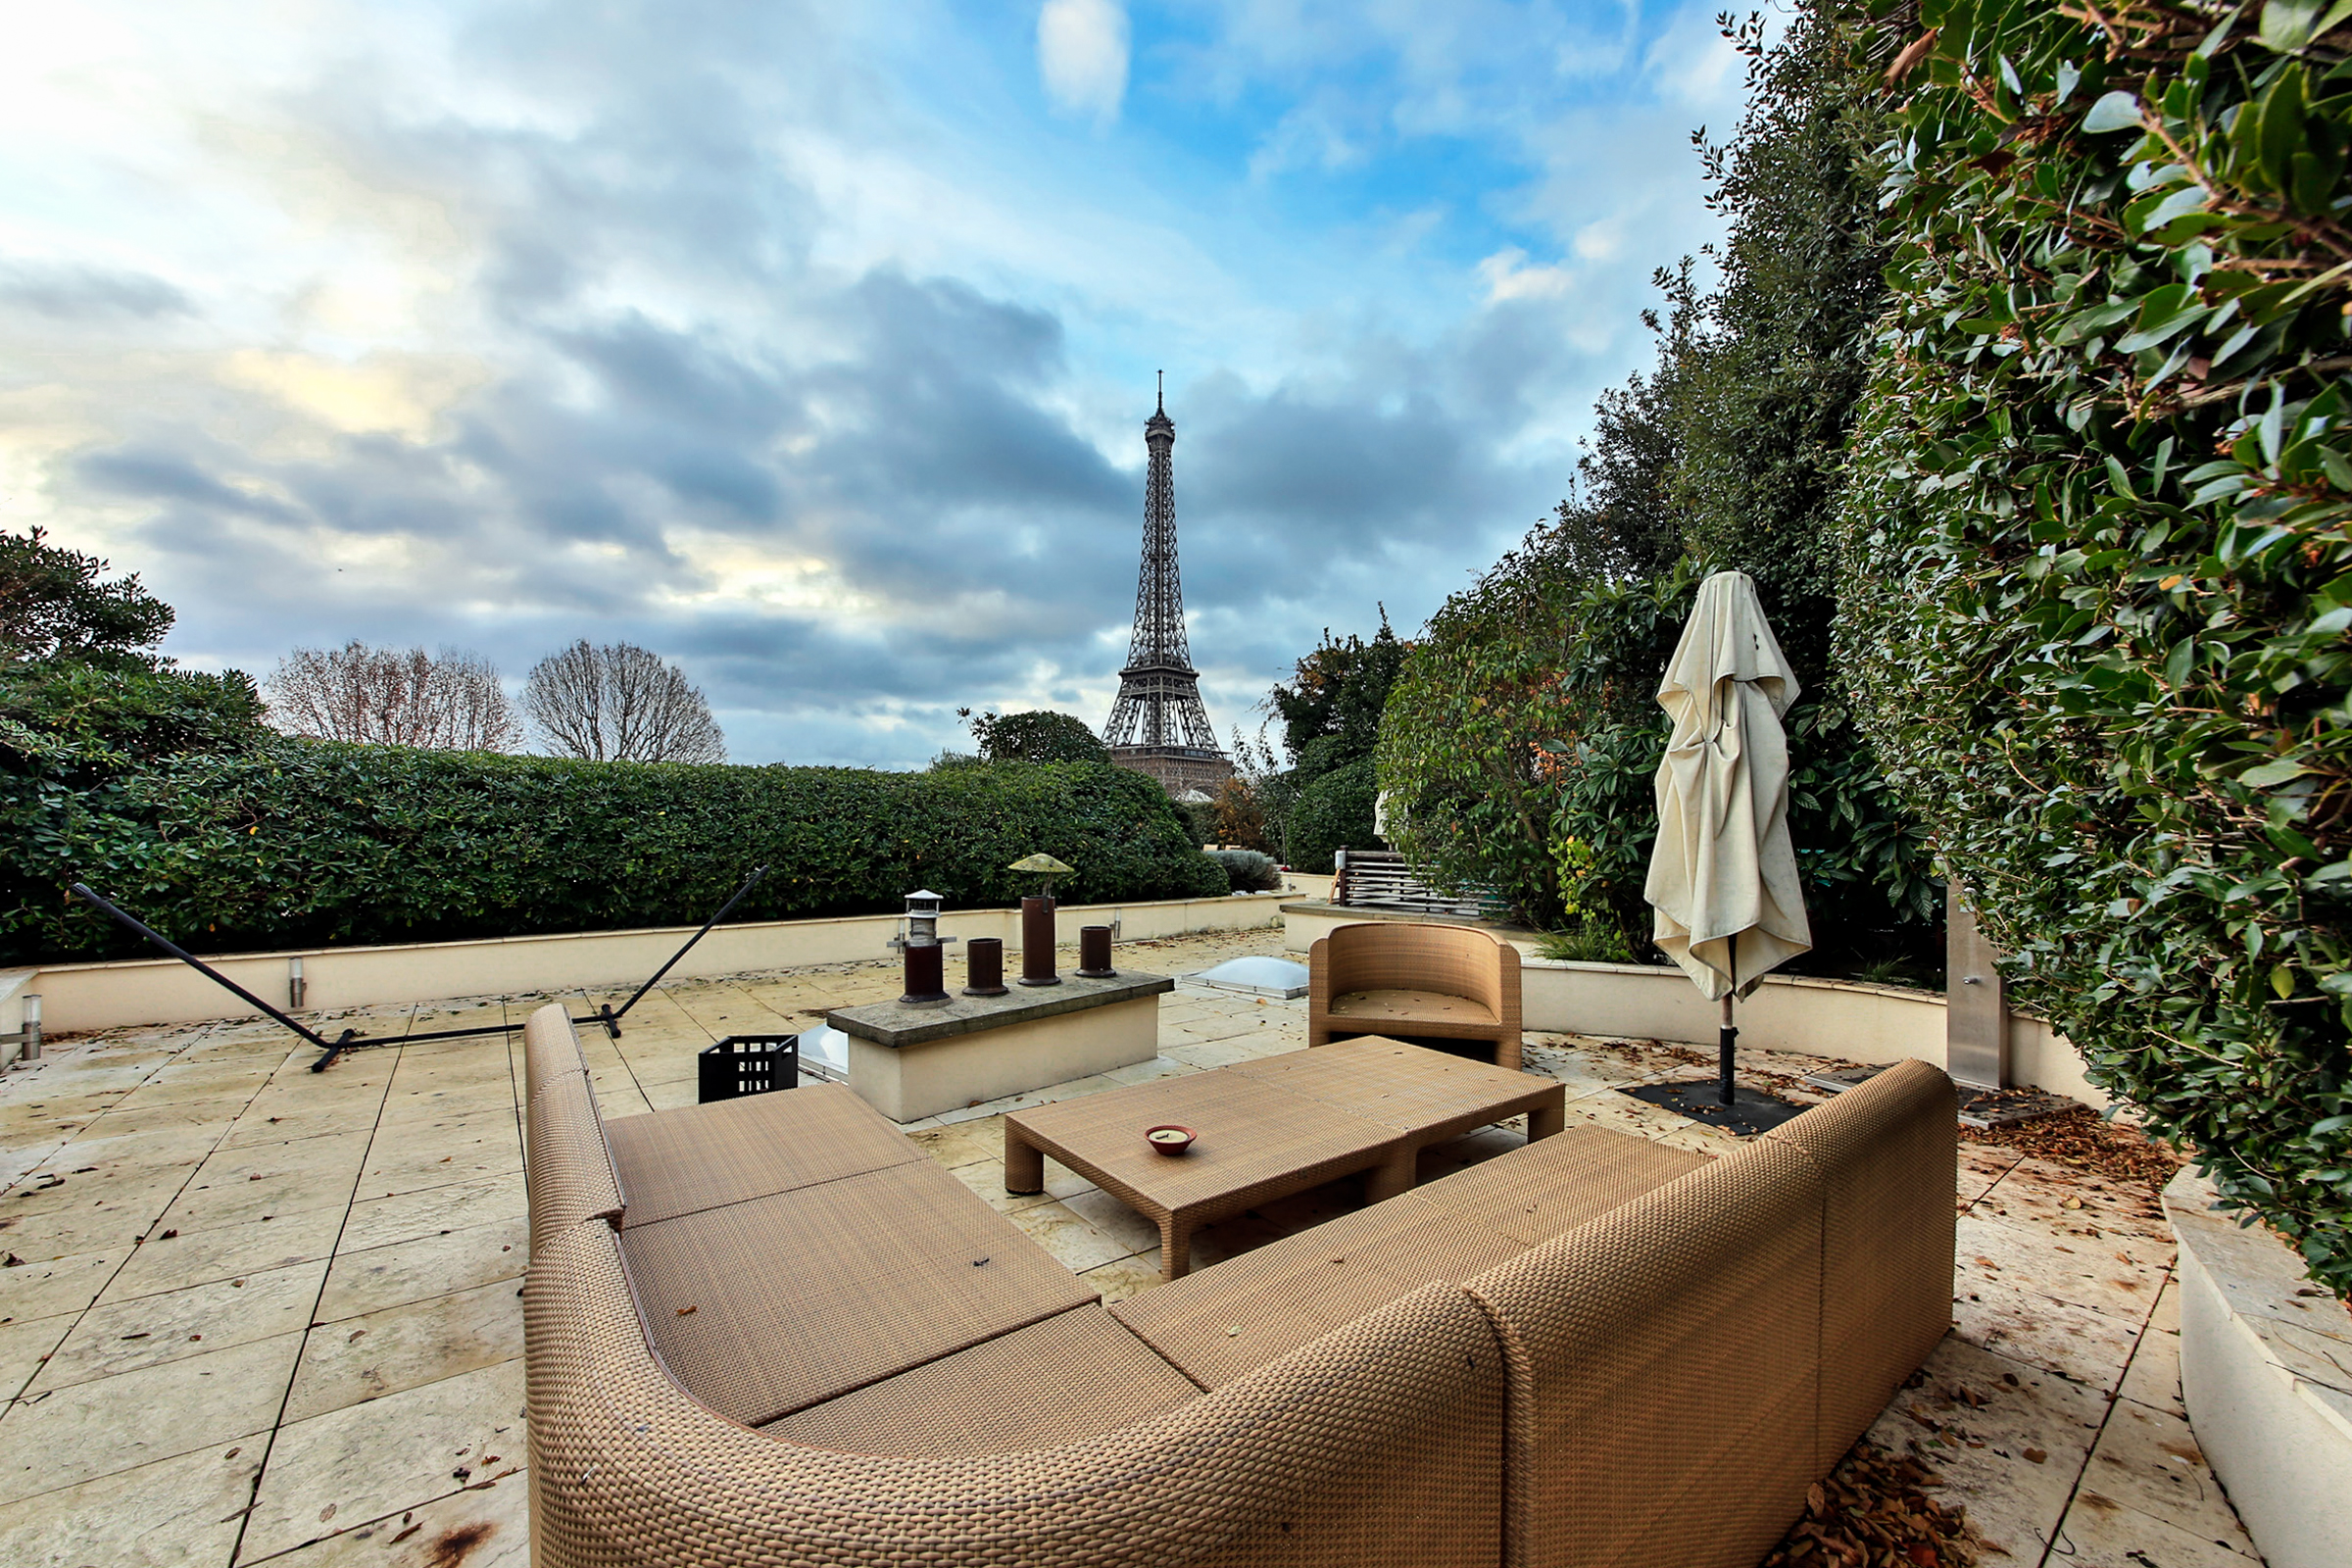 Appartamento per Vendita alle ore Penthouse - Eiffel Tower View Paris, Parigi 75116 Francia